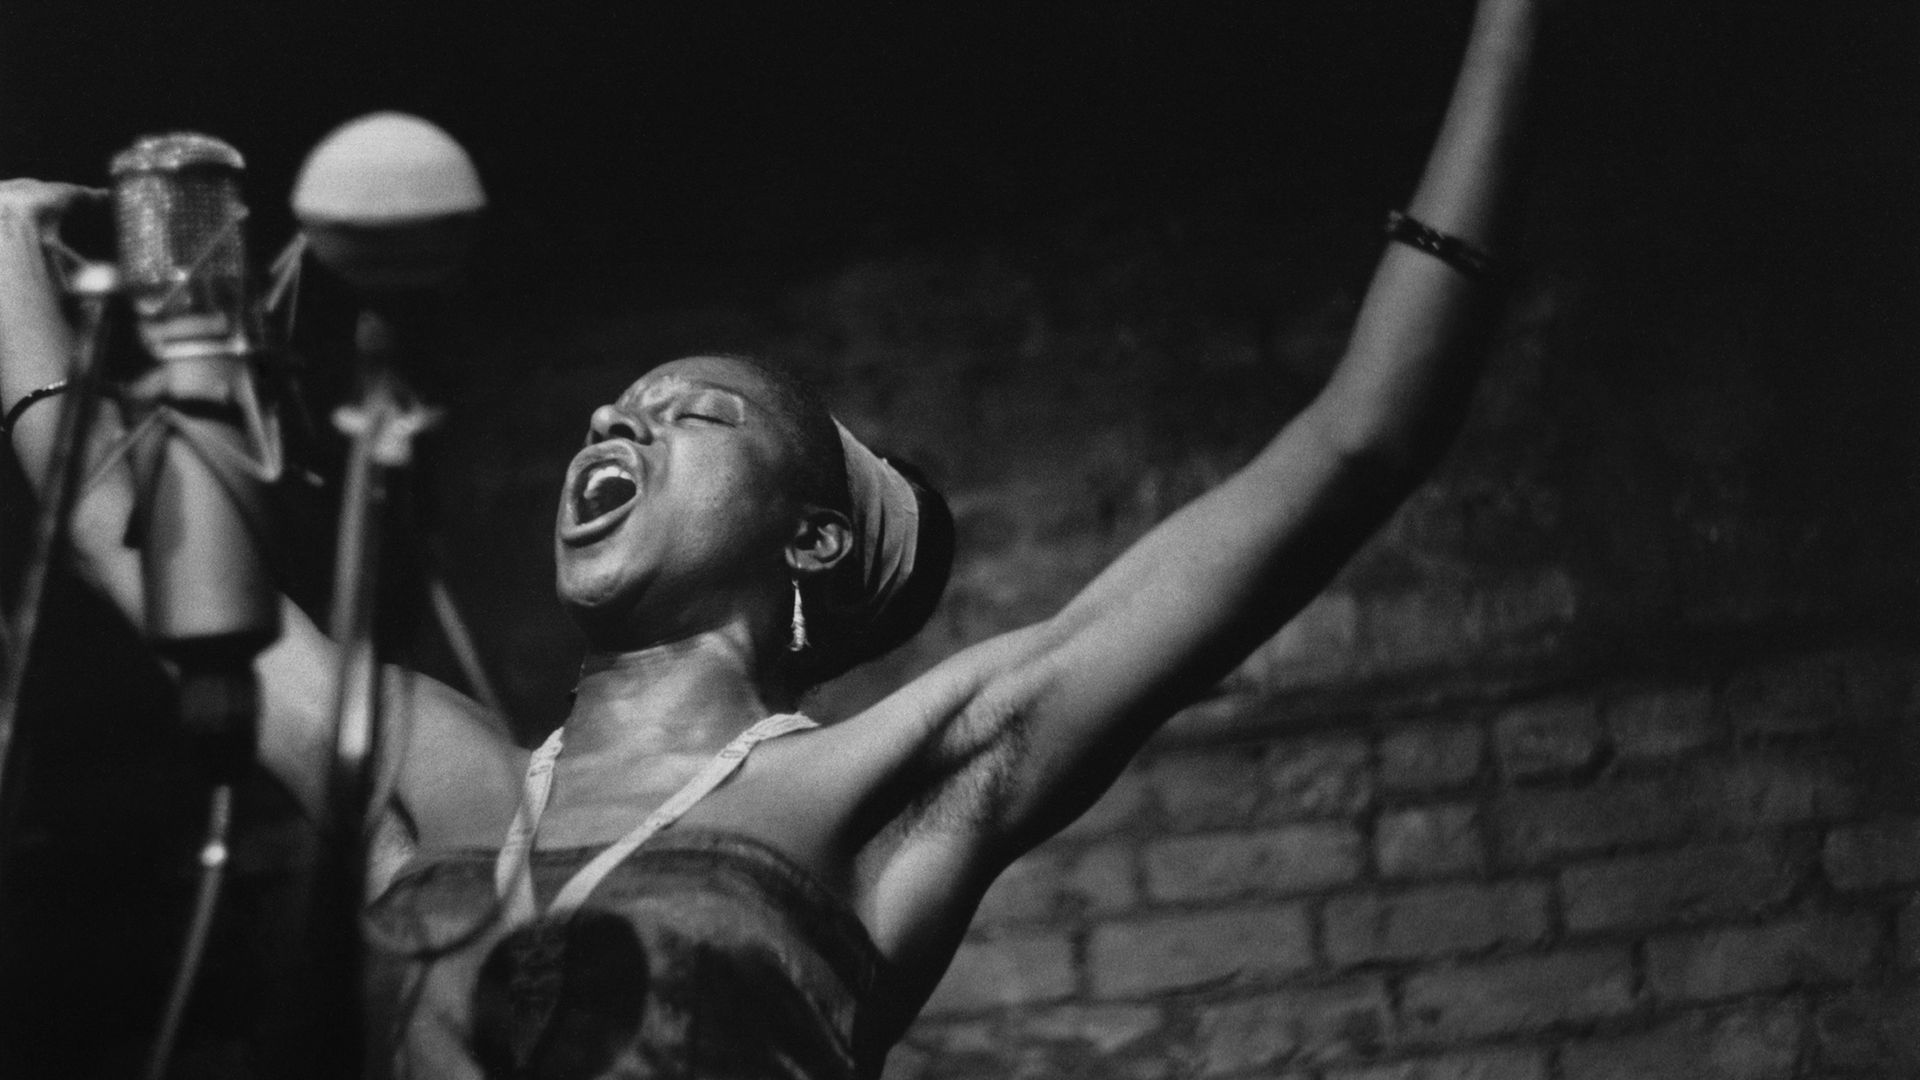 South African singer Miriam Makeba - known as Mama Africa - pictured at the Bitter End folk club in Greenwich Village, New York, in 1961 - Credit: Getty Images